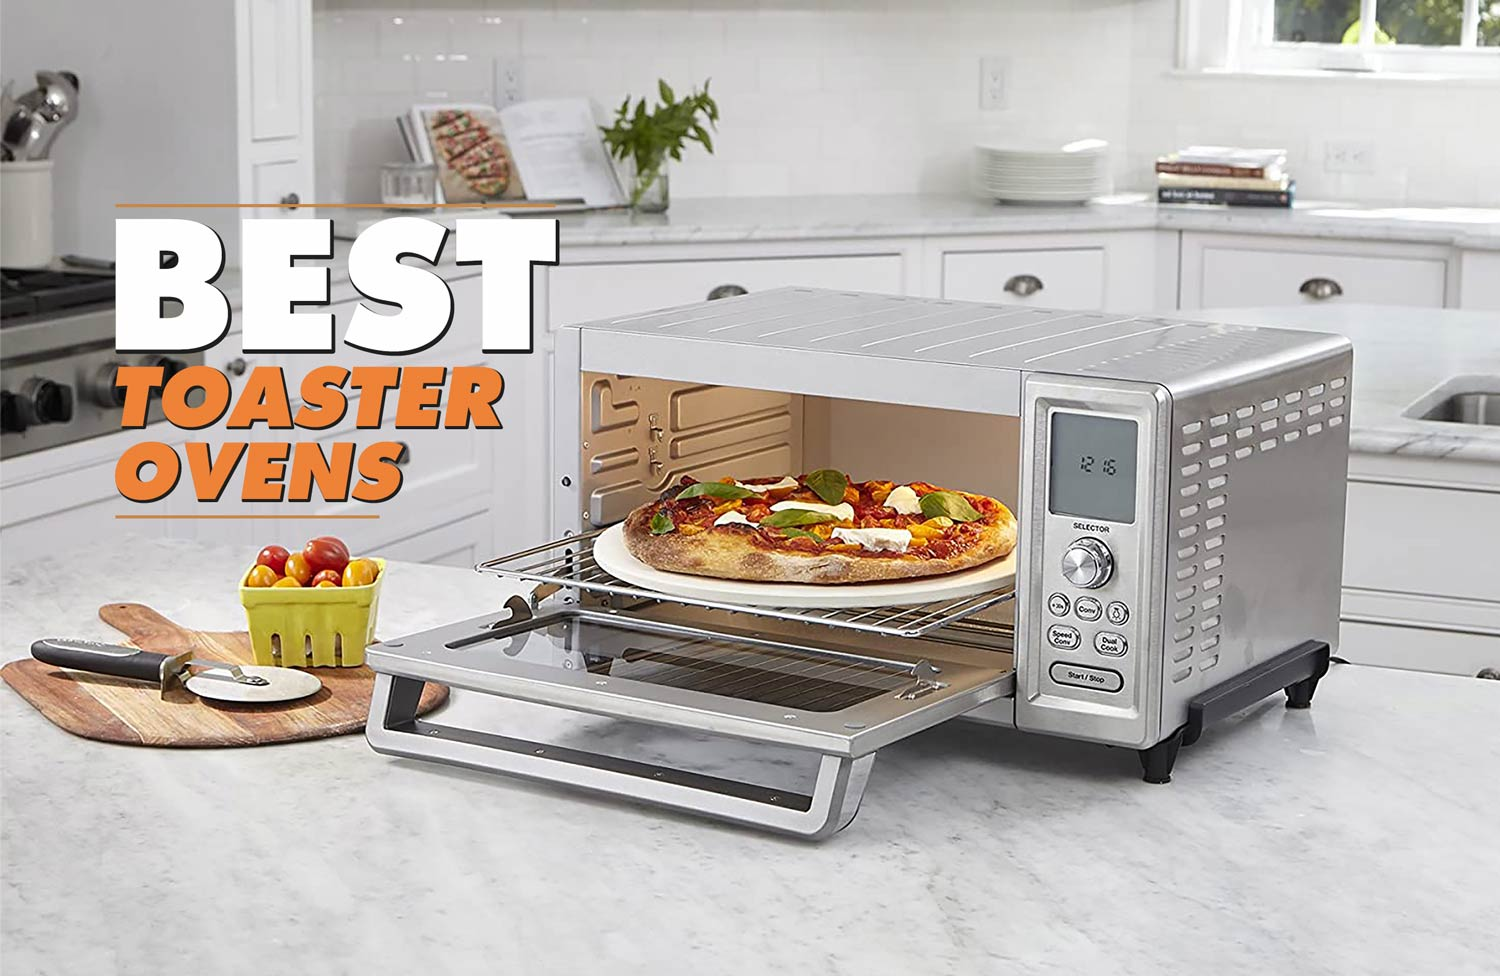 Best Toaster Ovens 2020 | Top 8